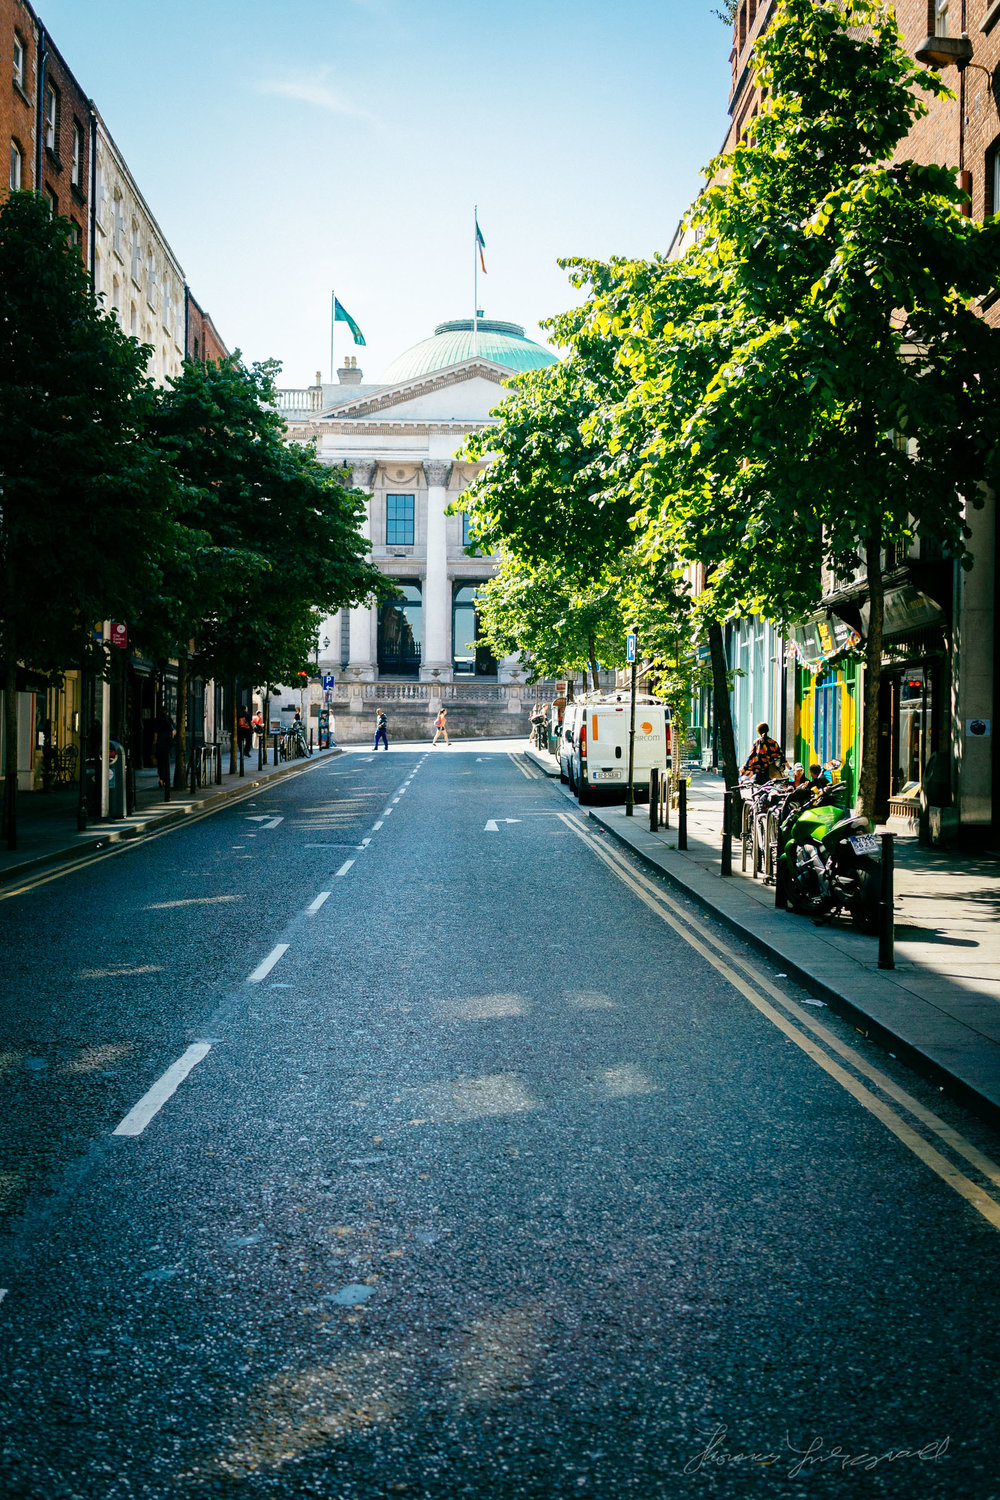 Streets-of-Dublin-Photo-2003.jpg